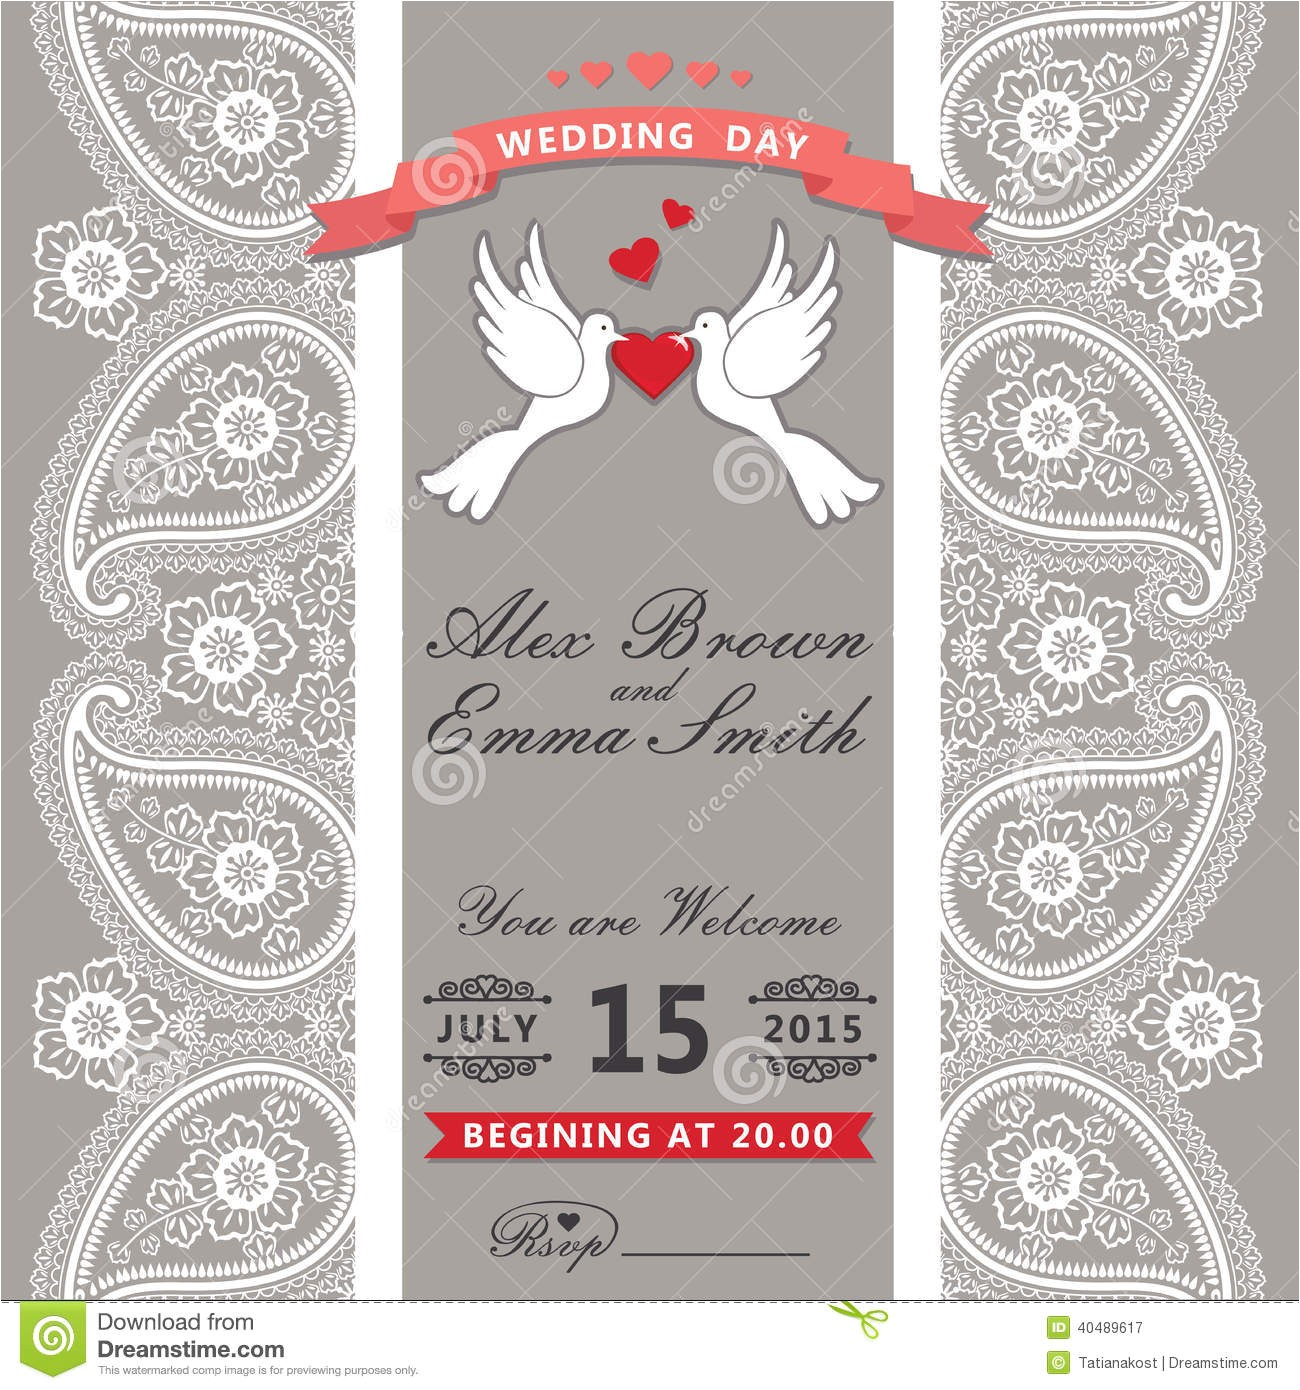 royalty free stock photography cute wedding invitation paisley border lace cartoon pigeons vint design template motive hearts ribbon turkish cucumbers image40489617